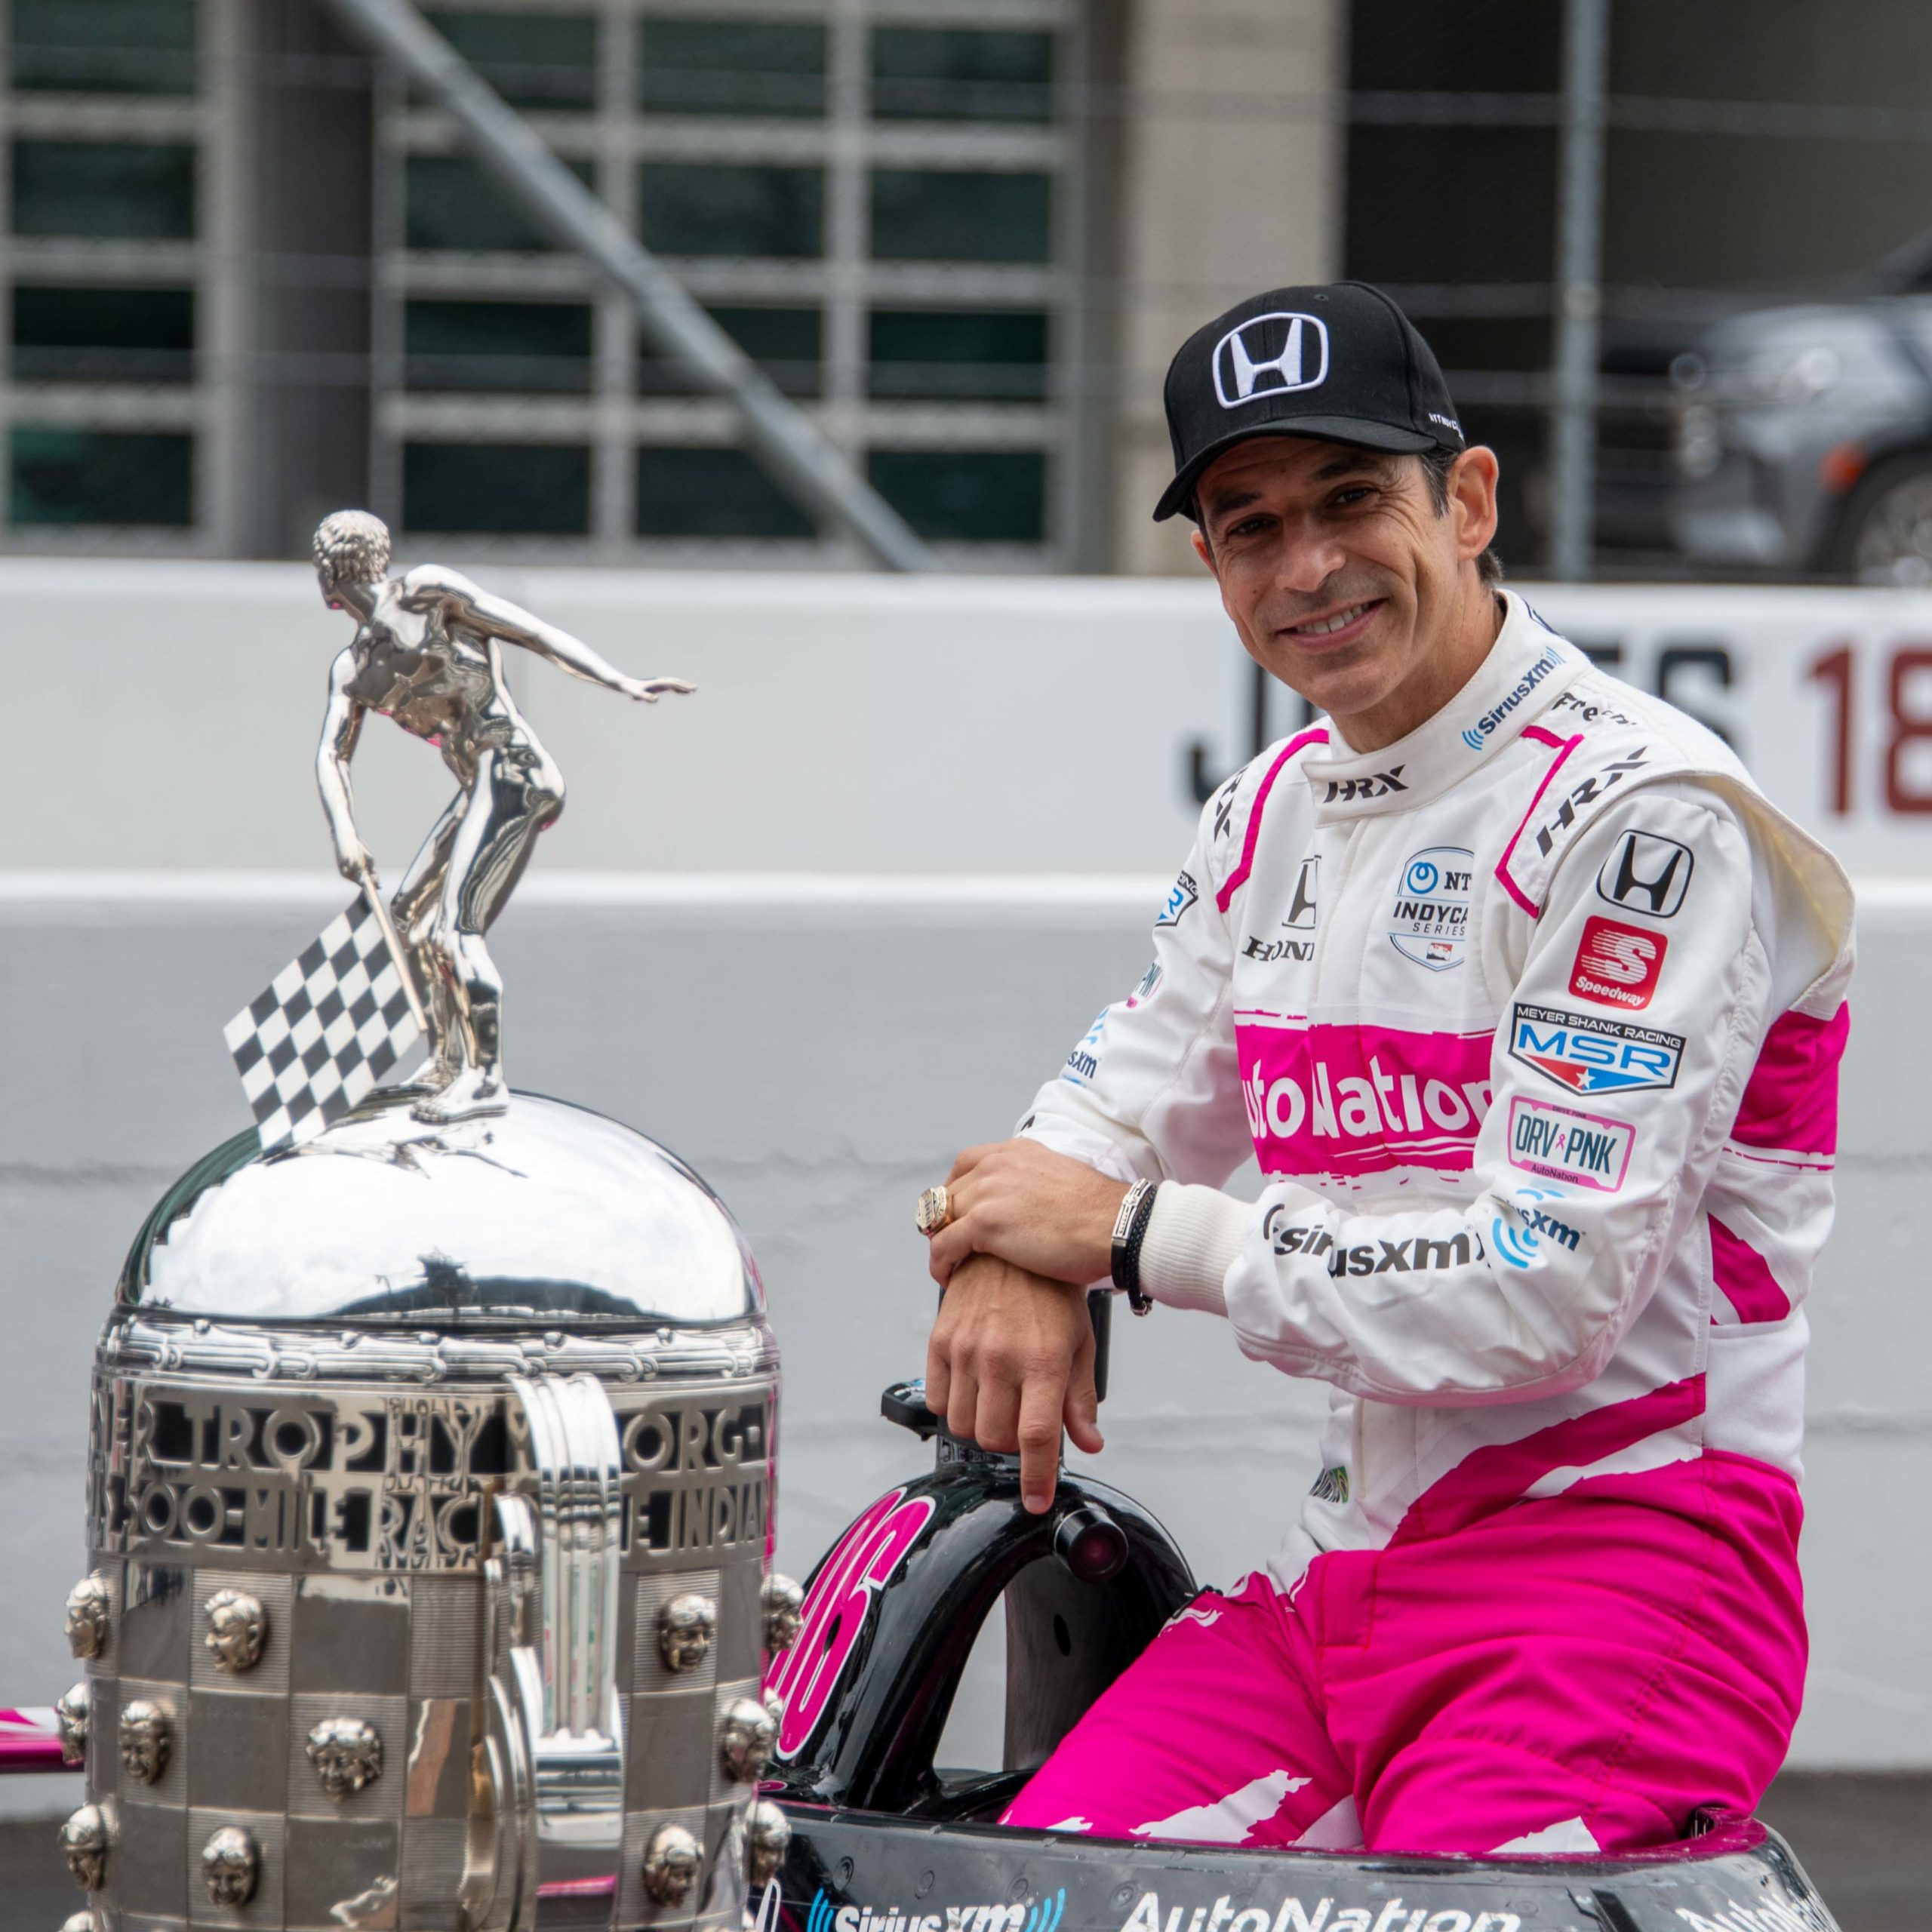 Helio Castroneves with Indy 500 trophy copy